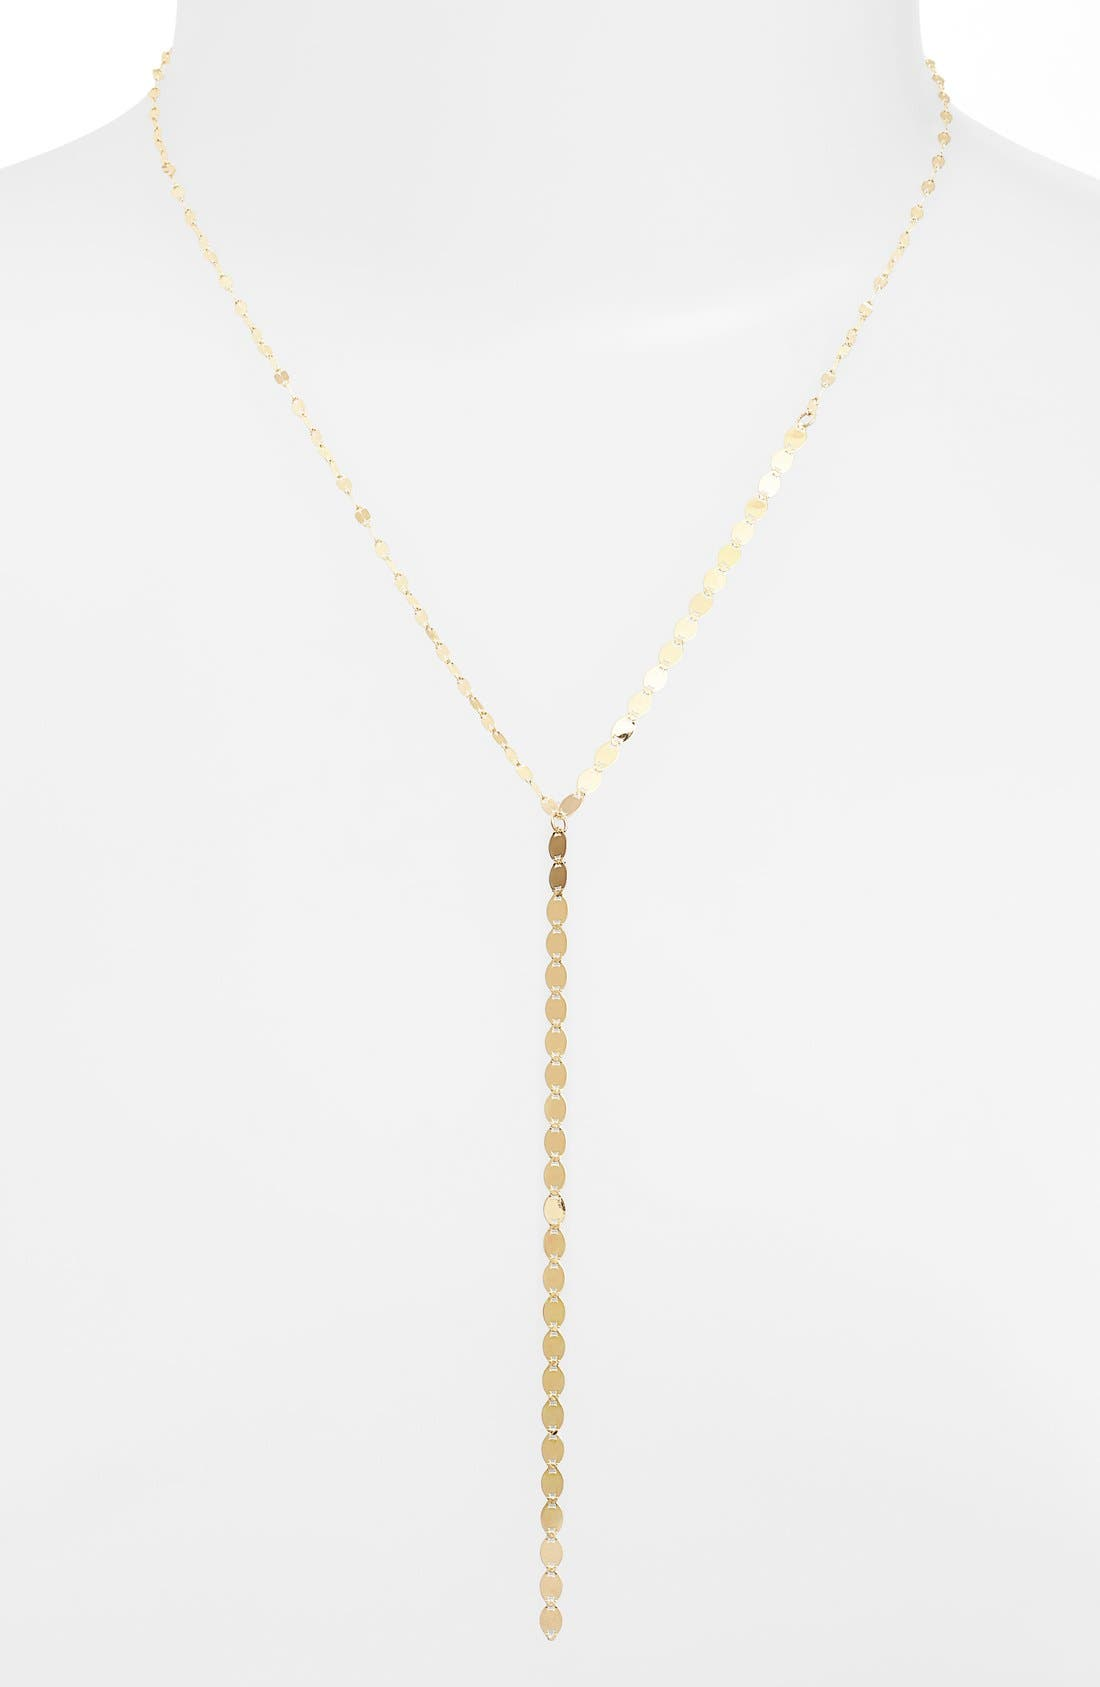 LANA JEWELRY Nude Y-Necklace